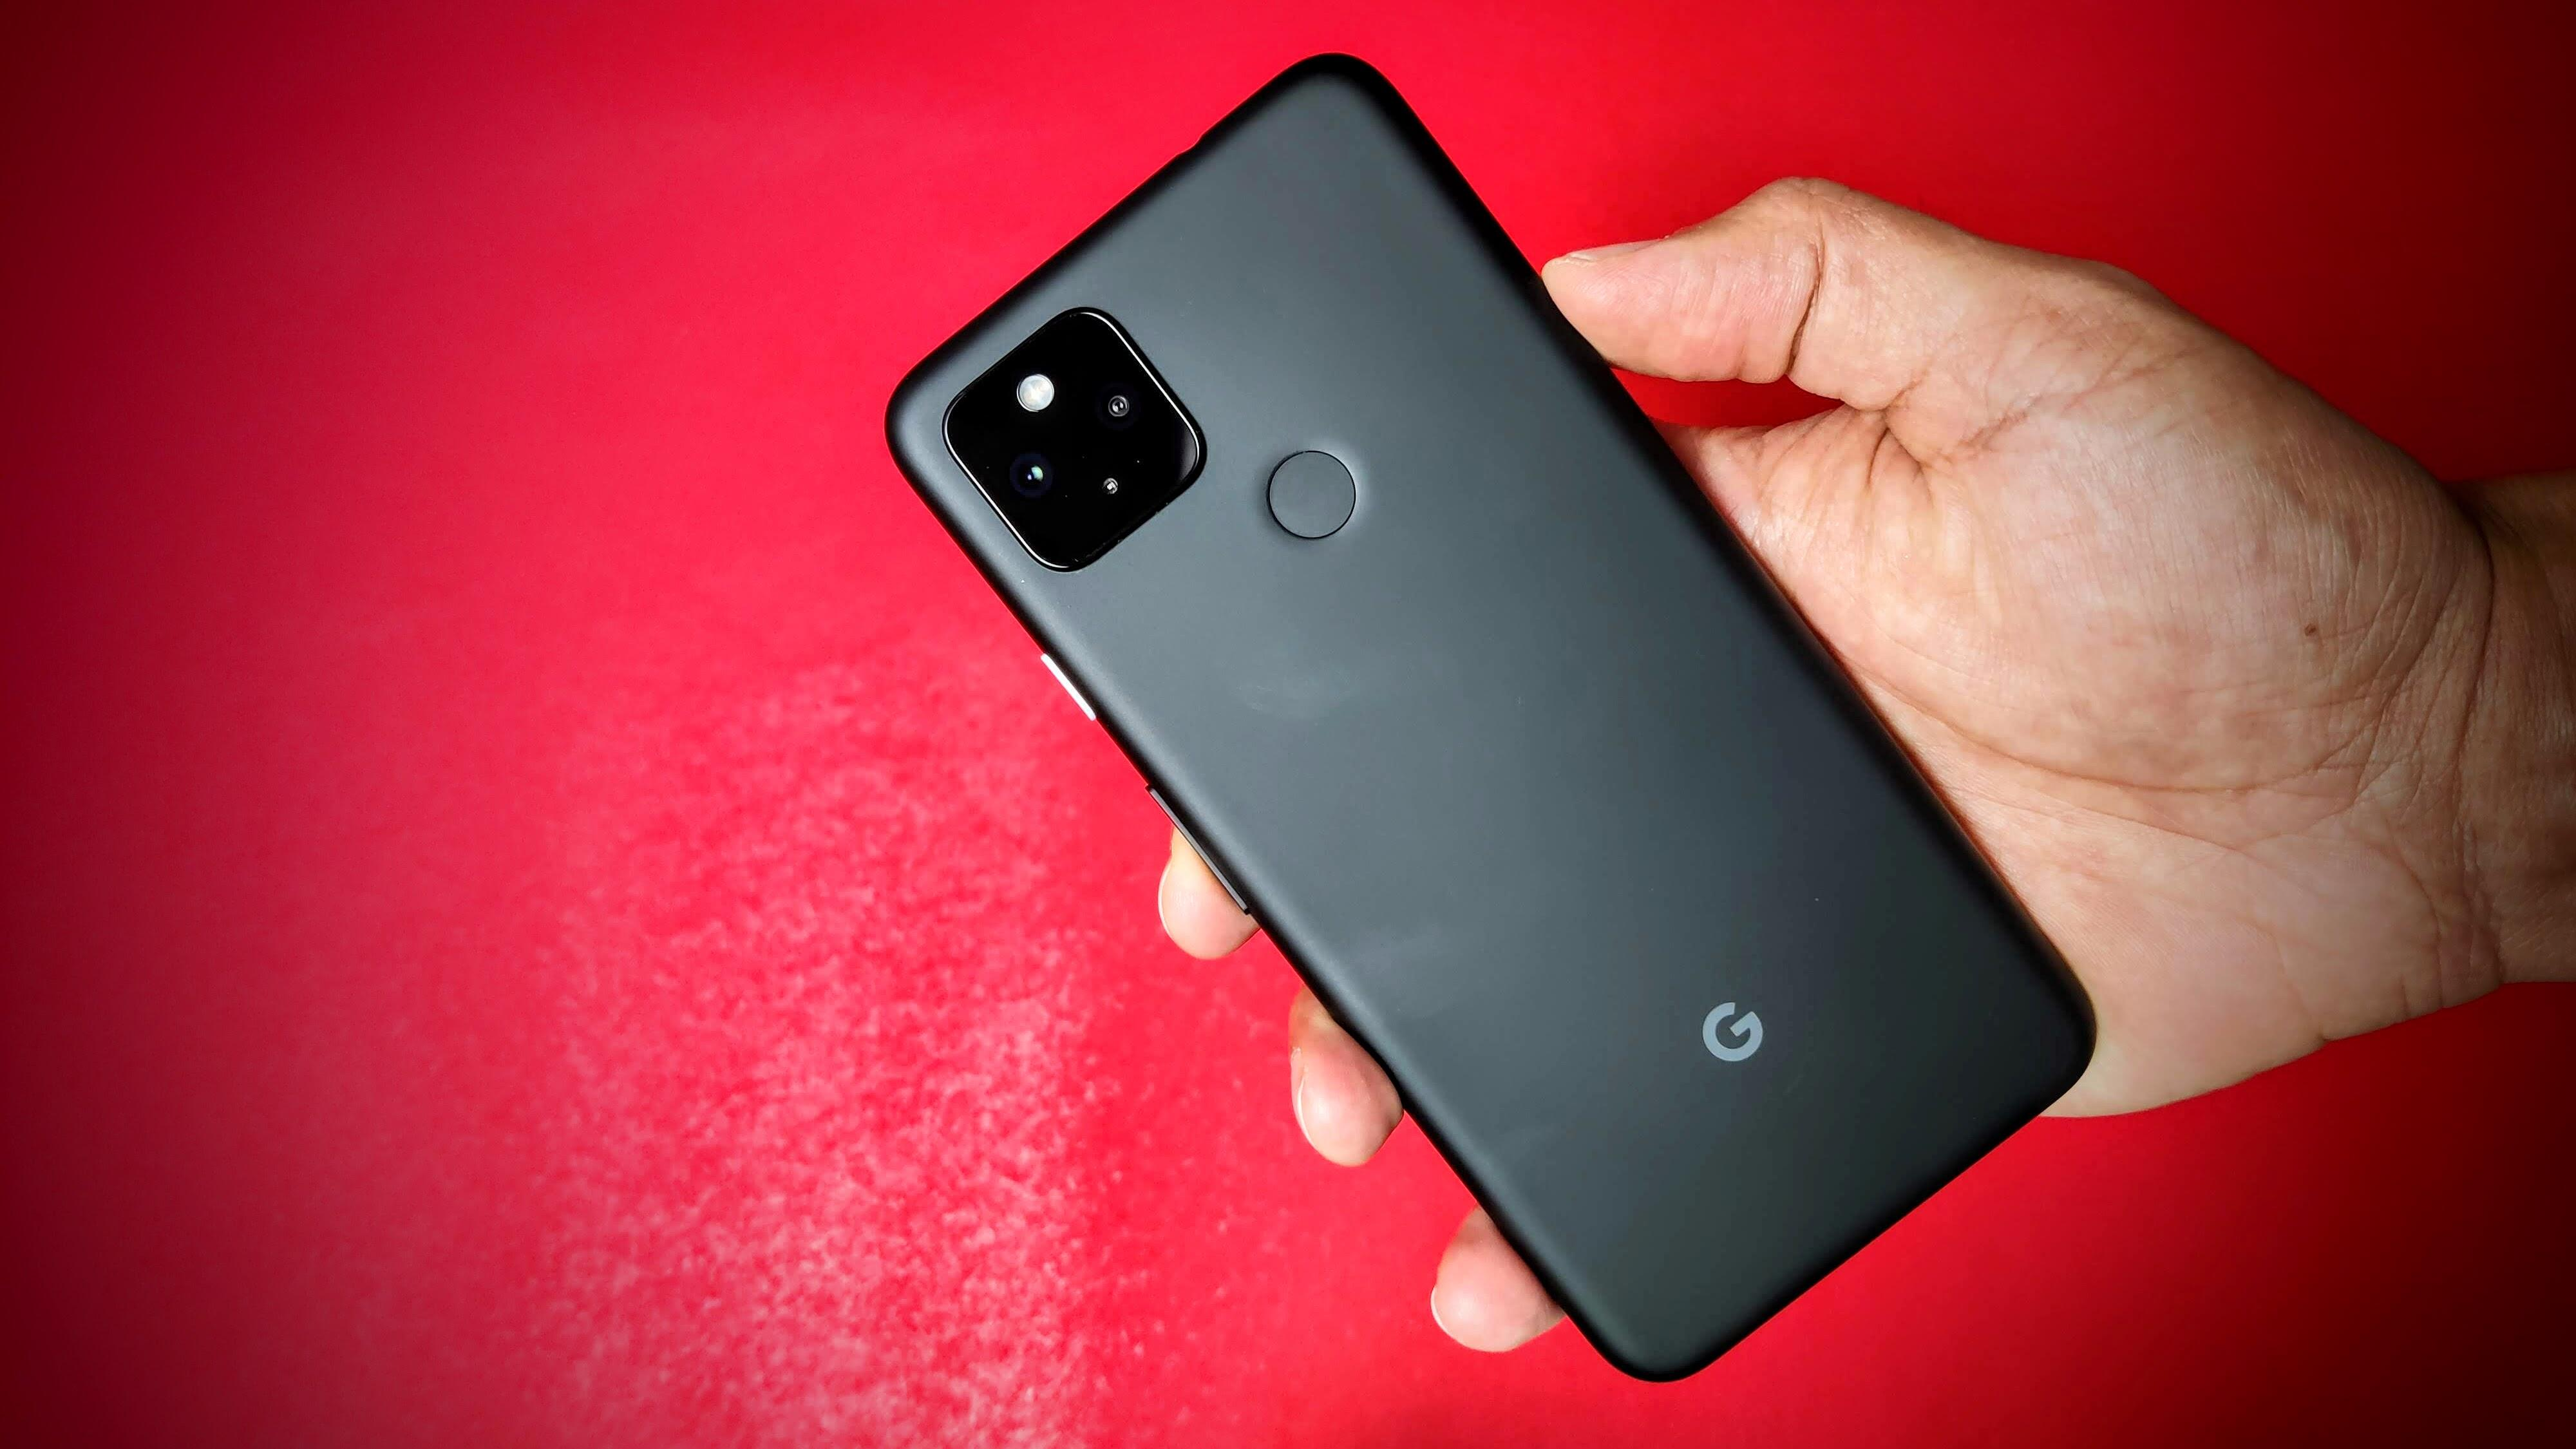 Pixel 6 is coming soon, but maybe you should just buy a Pixel 3, 4 or 5 - CNET